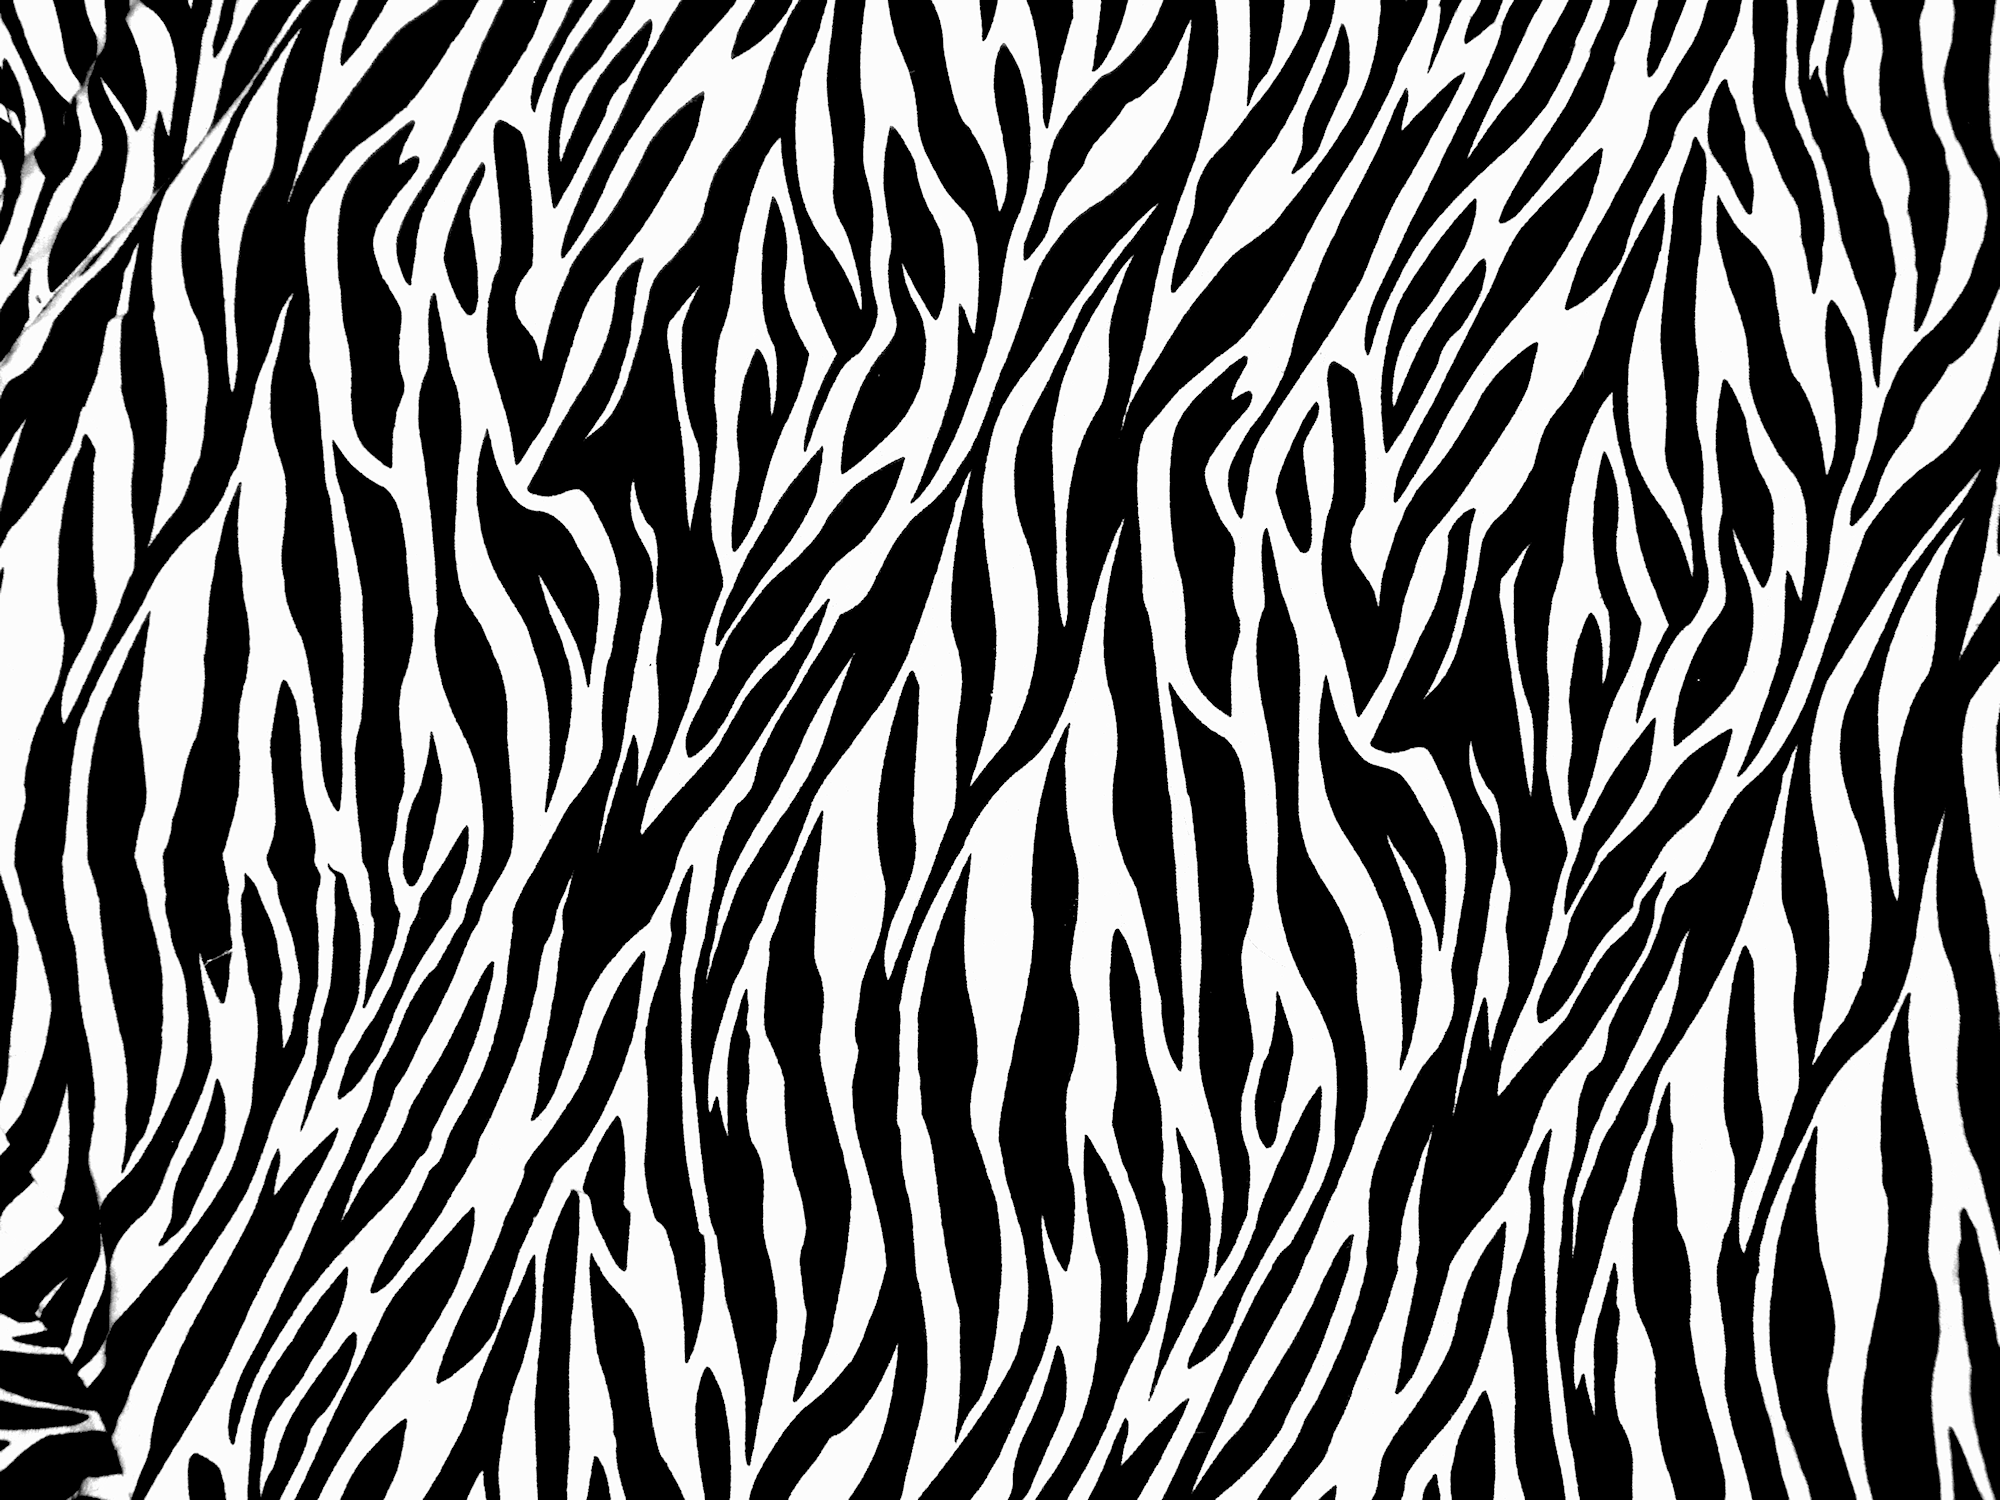 Zebra-print-texture-by-ghoulskout-on-deviantart.png 2,000 - Leopard Print PNG